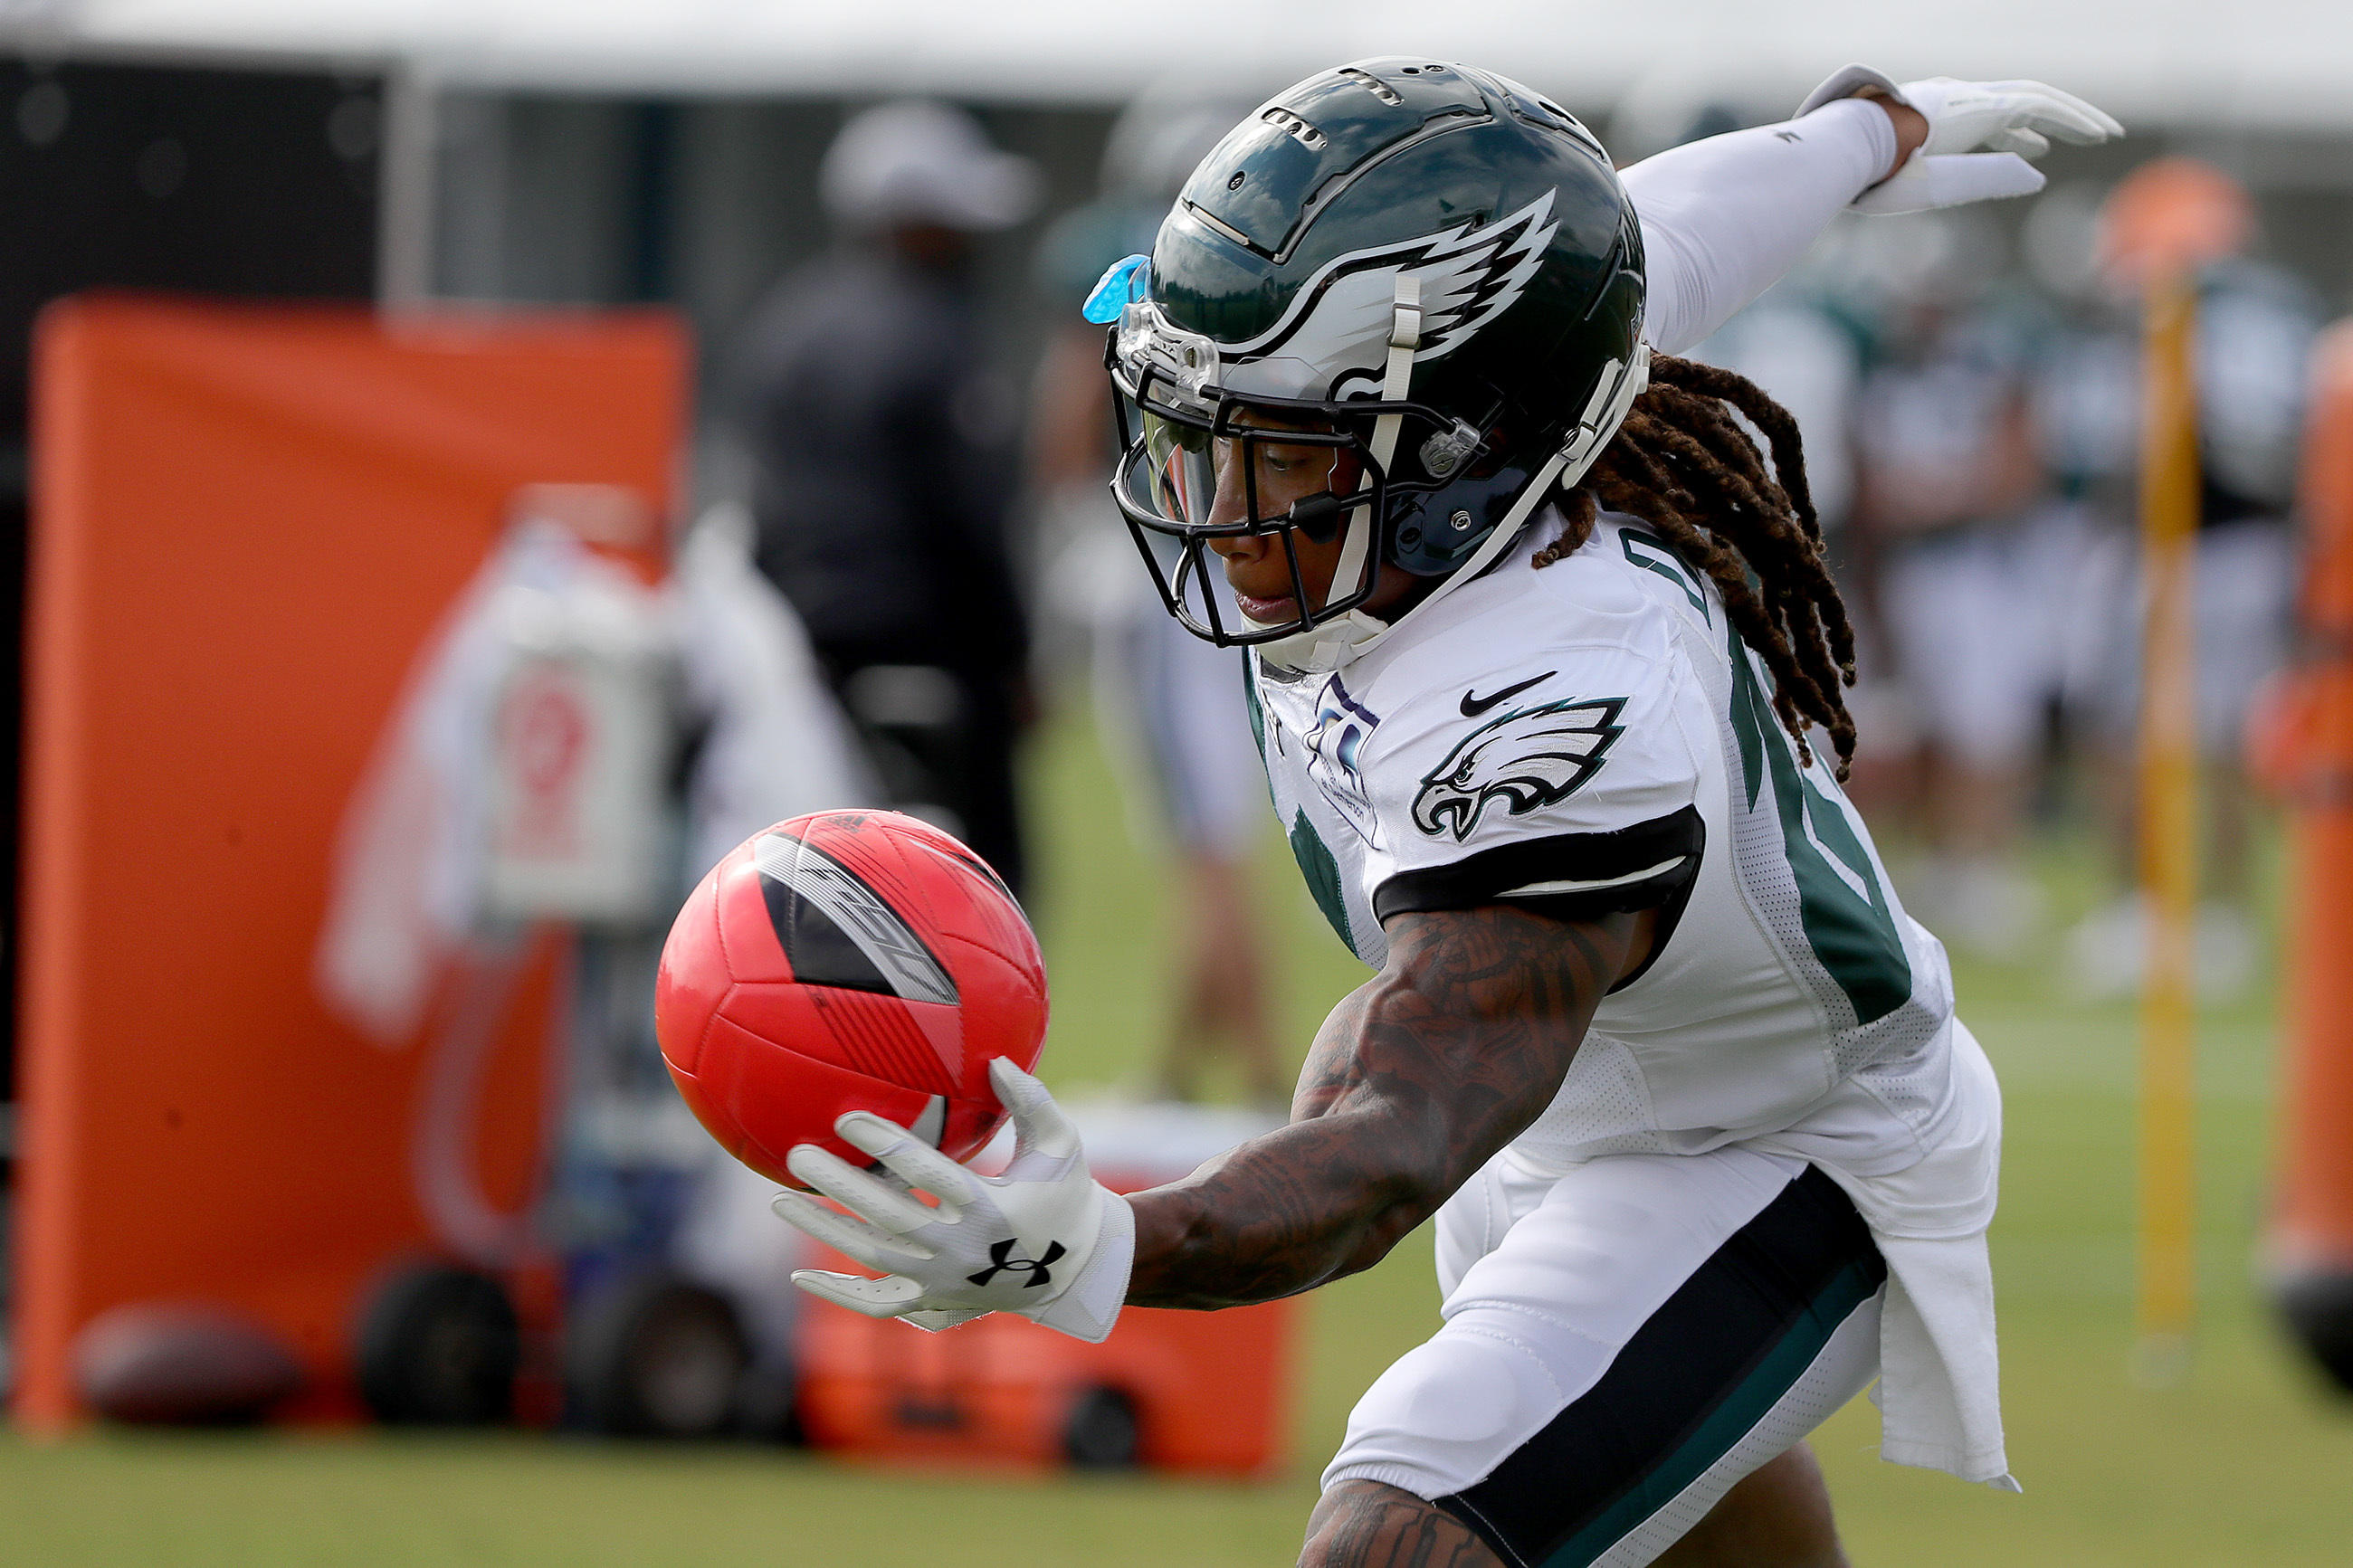 Eagles' Ronald Darby bats a ball from going into the endzone during a drill at the Philadelphia Eagles training camp at the NovaCare complex in Philadelphia, PA on July 31, 2018. DAVID MAIALETTI / Staff Photographer